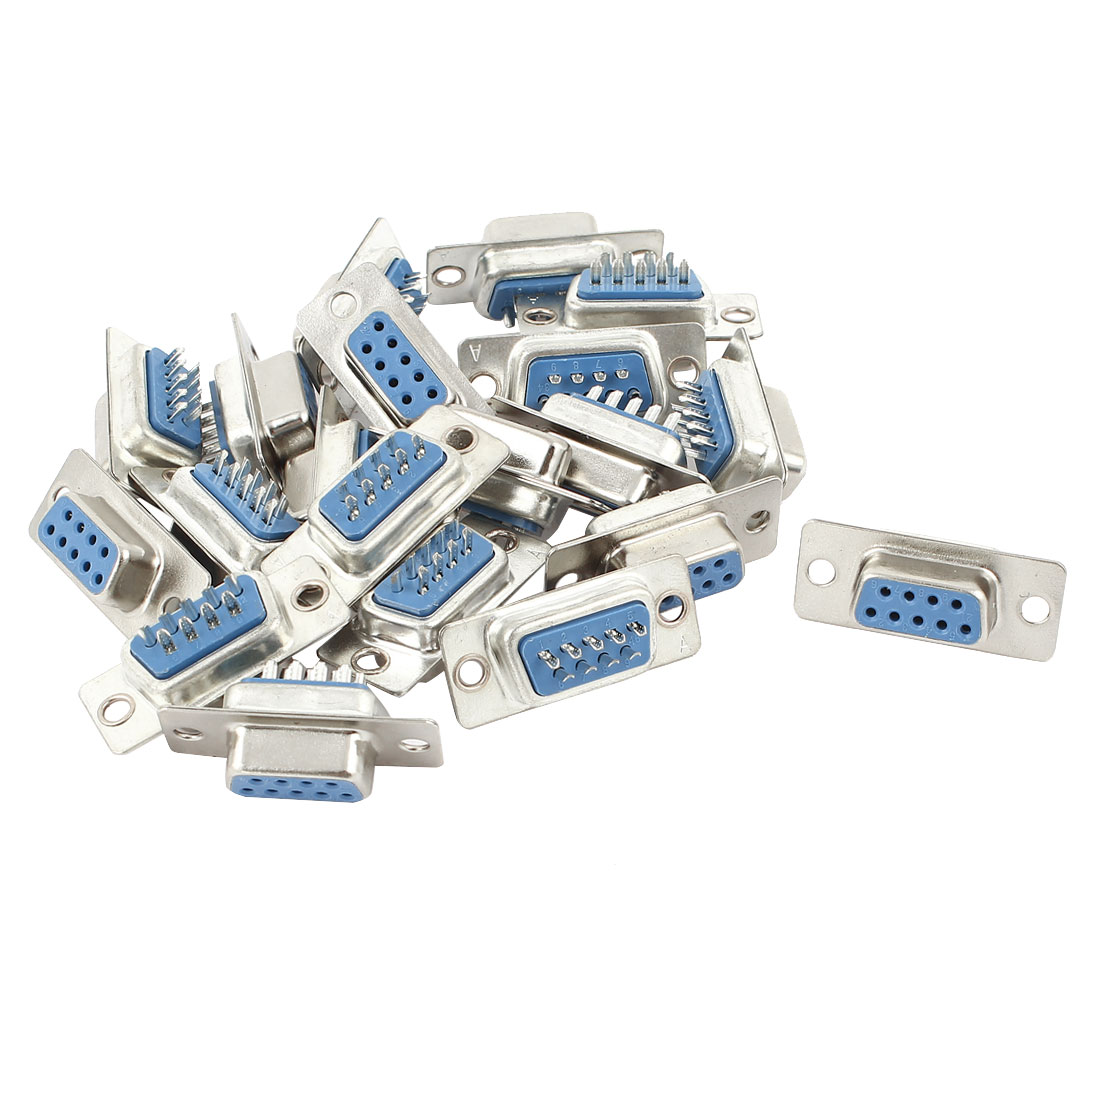 20 Pcs DB9 RS232 Serial 9 Pin Female Connector Adapter